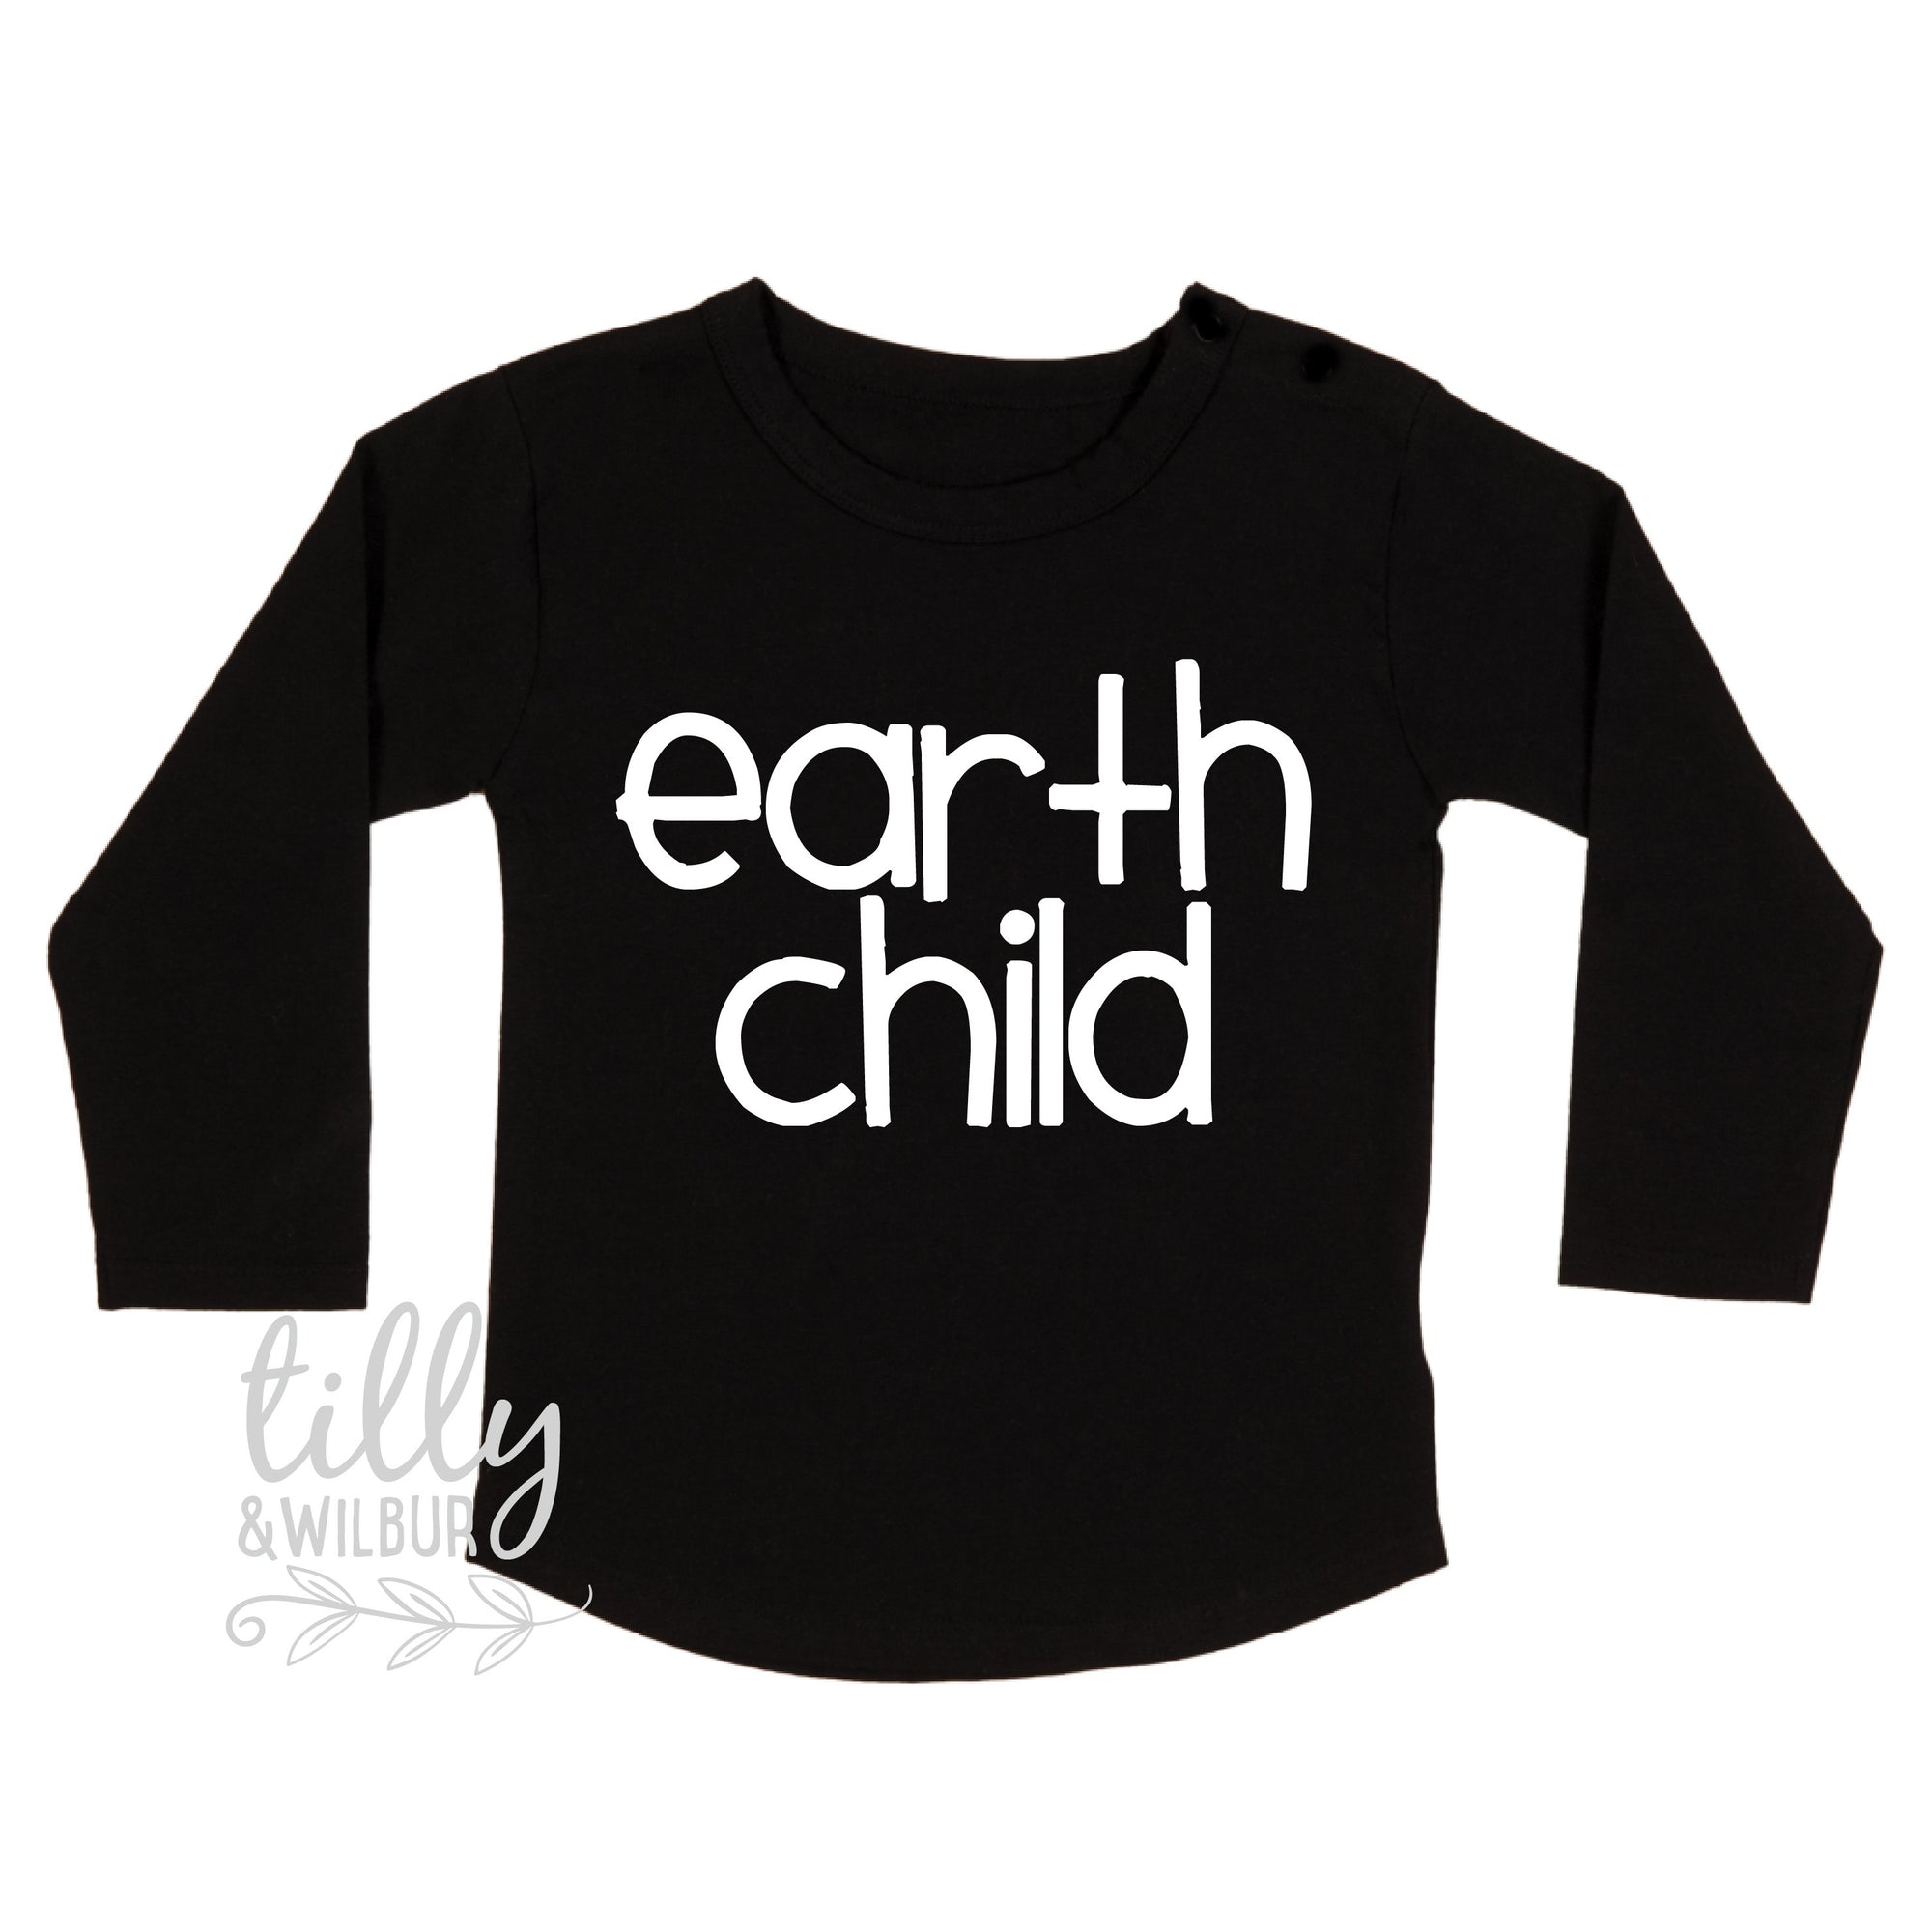 Earth Child Long Sleeve T-Shirt, Unisex Earth Child Kid's T-Shirt, Earthchild Childrens Tee, Environment, Equality, Save The Planet, Warrior